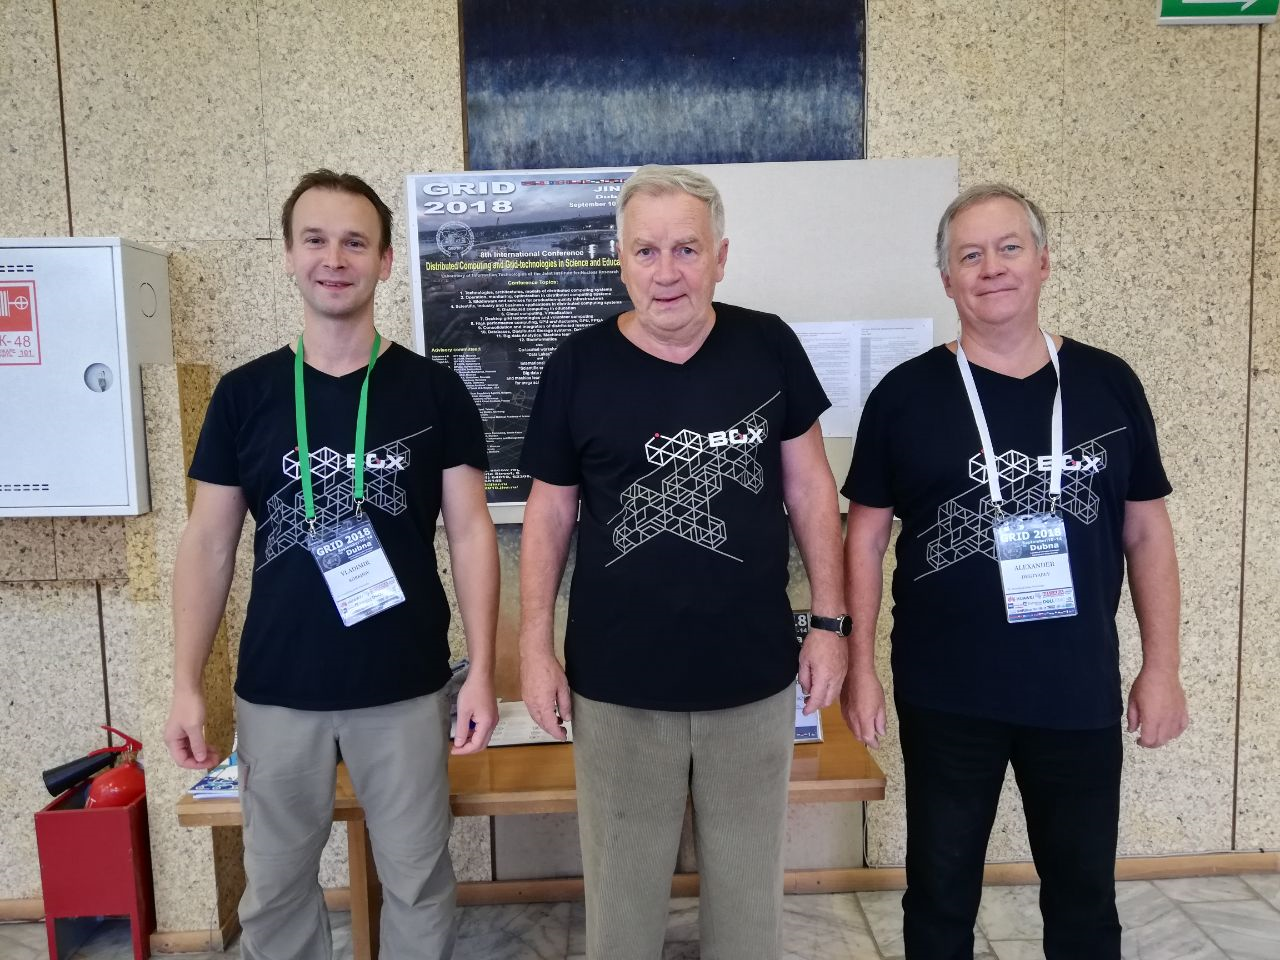 CONSENSUS ANNOUNCEMENT AT GRID -2018 CONFERENCE IN DUBNA